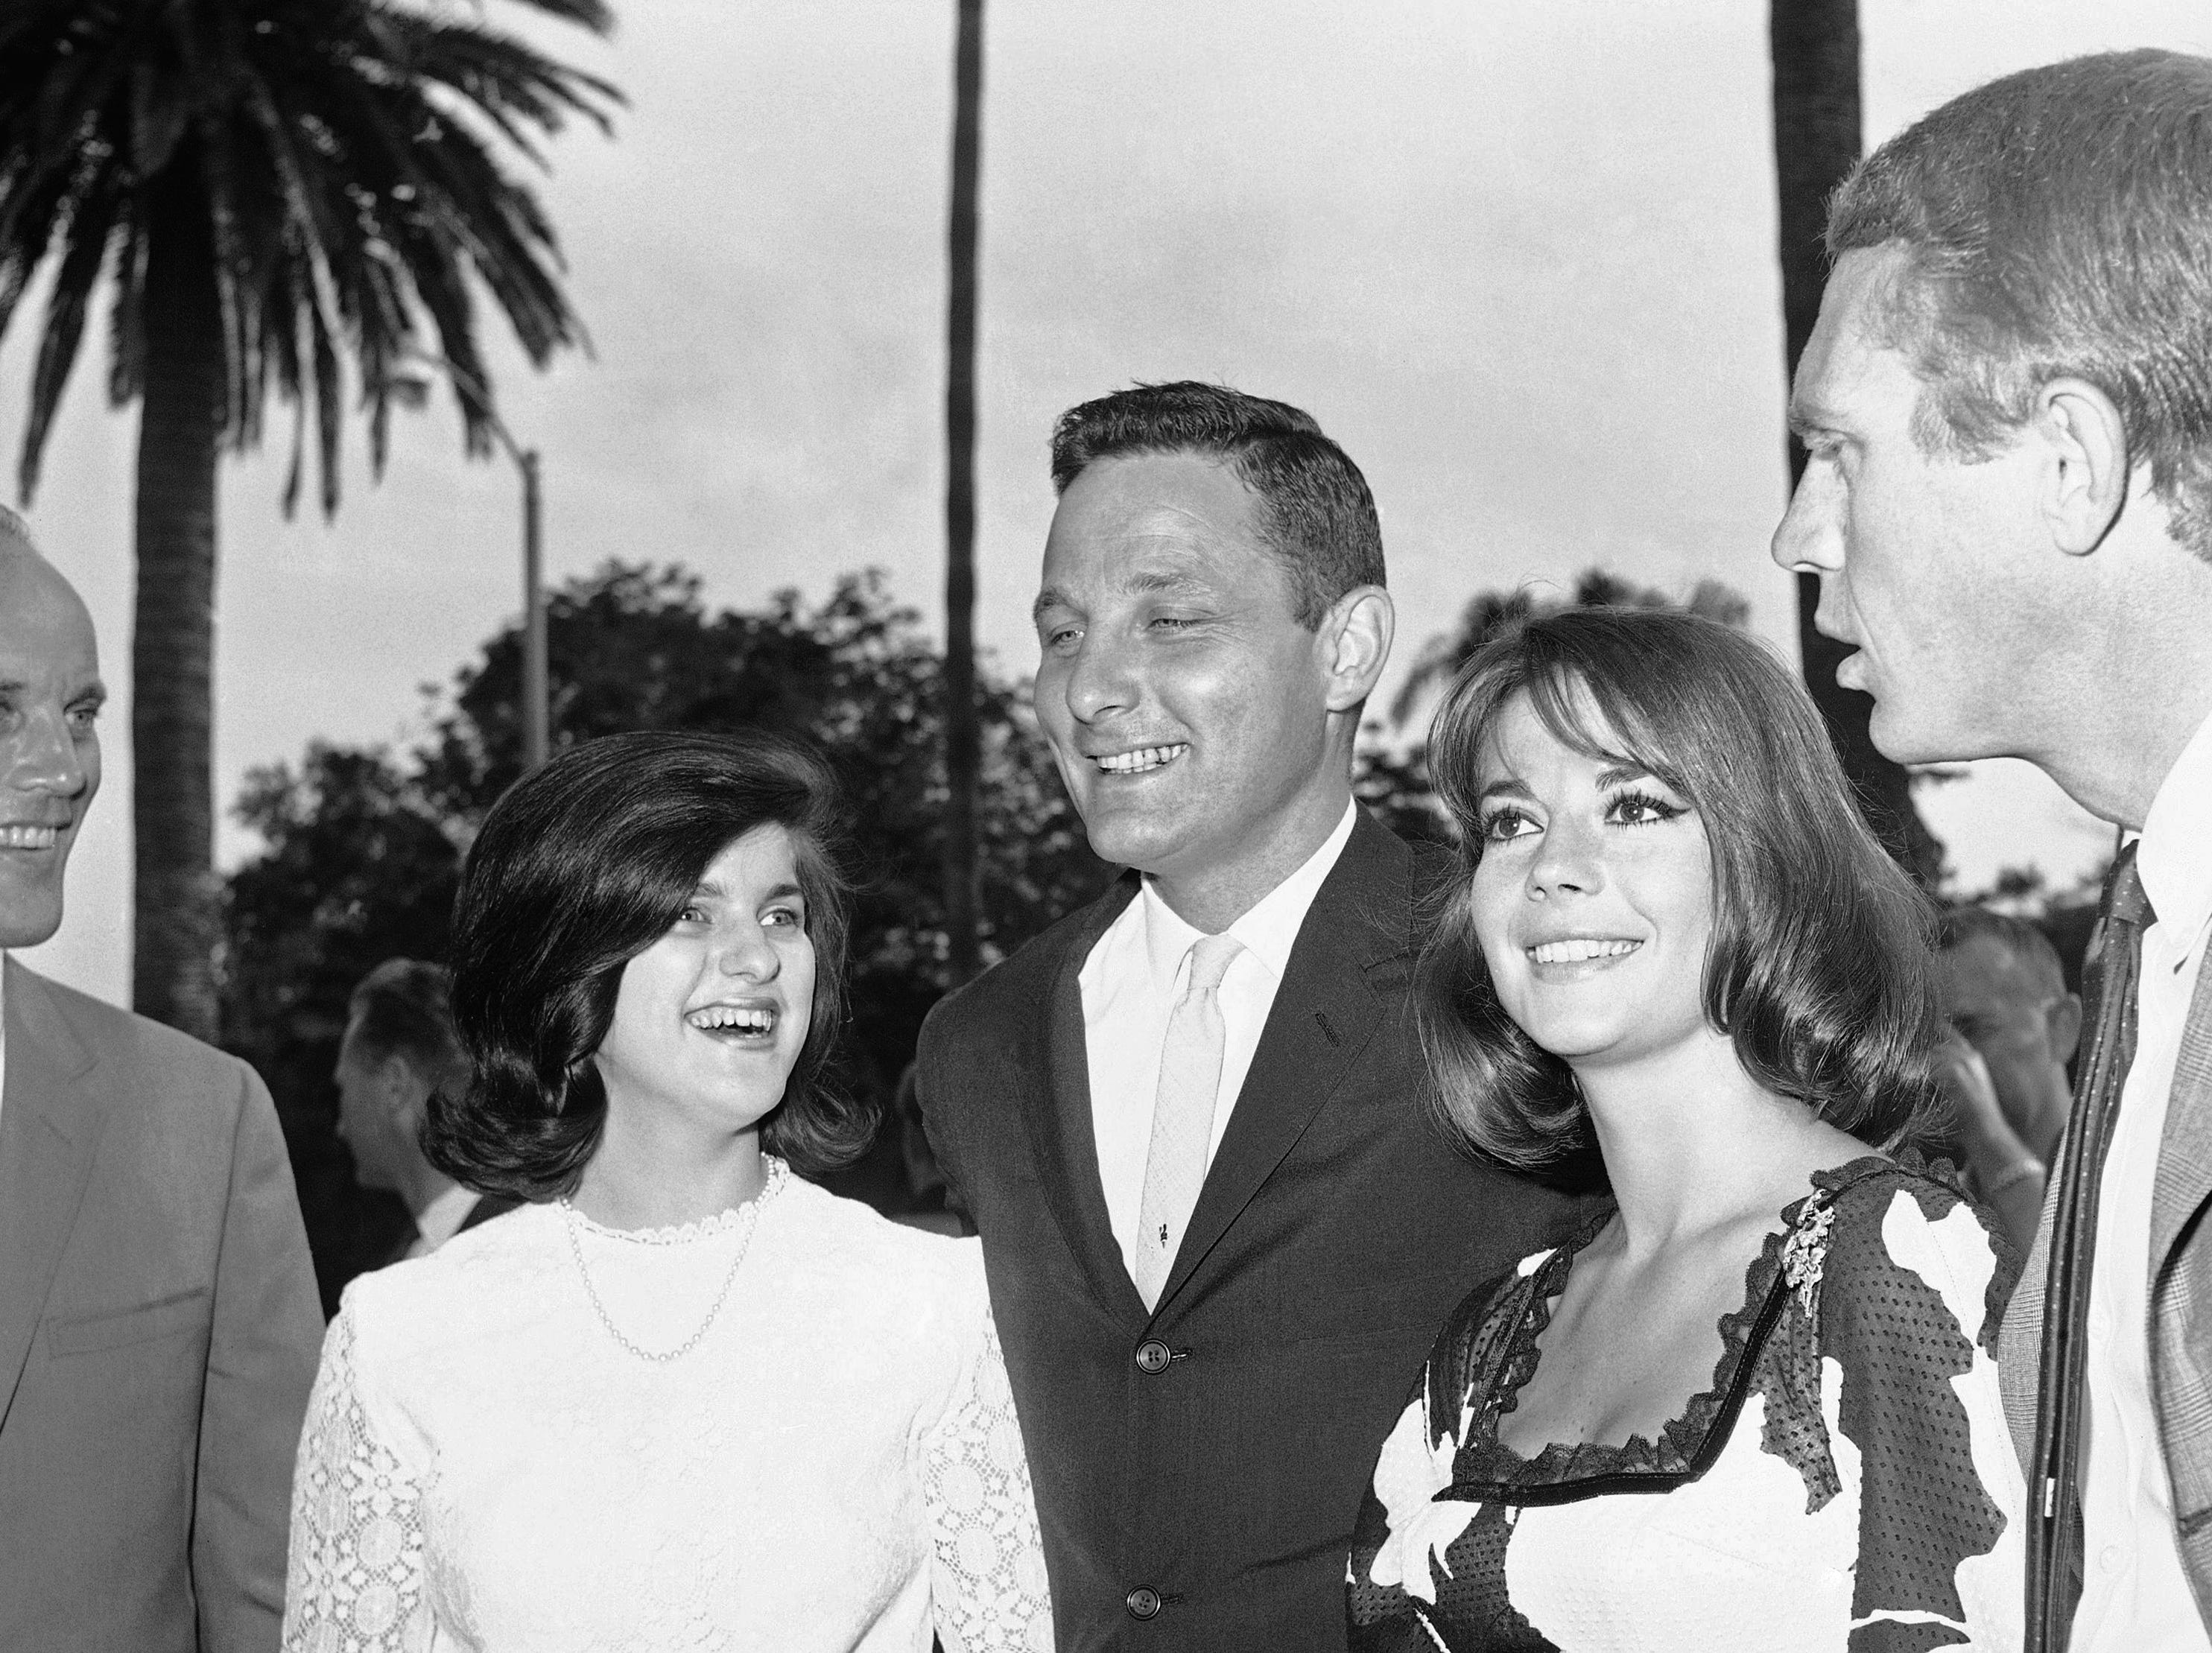 Luci Baines Johnson, younger daughter of President Johnson (left) and Indiana Sen. Birch Bayh arrive for Young Citizens for Johnson Texas-style barbecue at Beverly Hills, August 9, 1964. Welcoming them are co-sponsors actress Natalie Wood and actor Steve McQueen. Over one thousand persons attended the affair. (AP Photo/Harold Matosian)